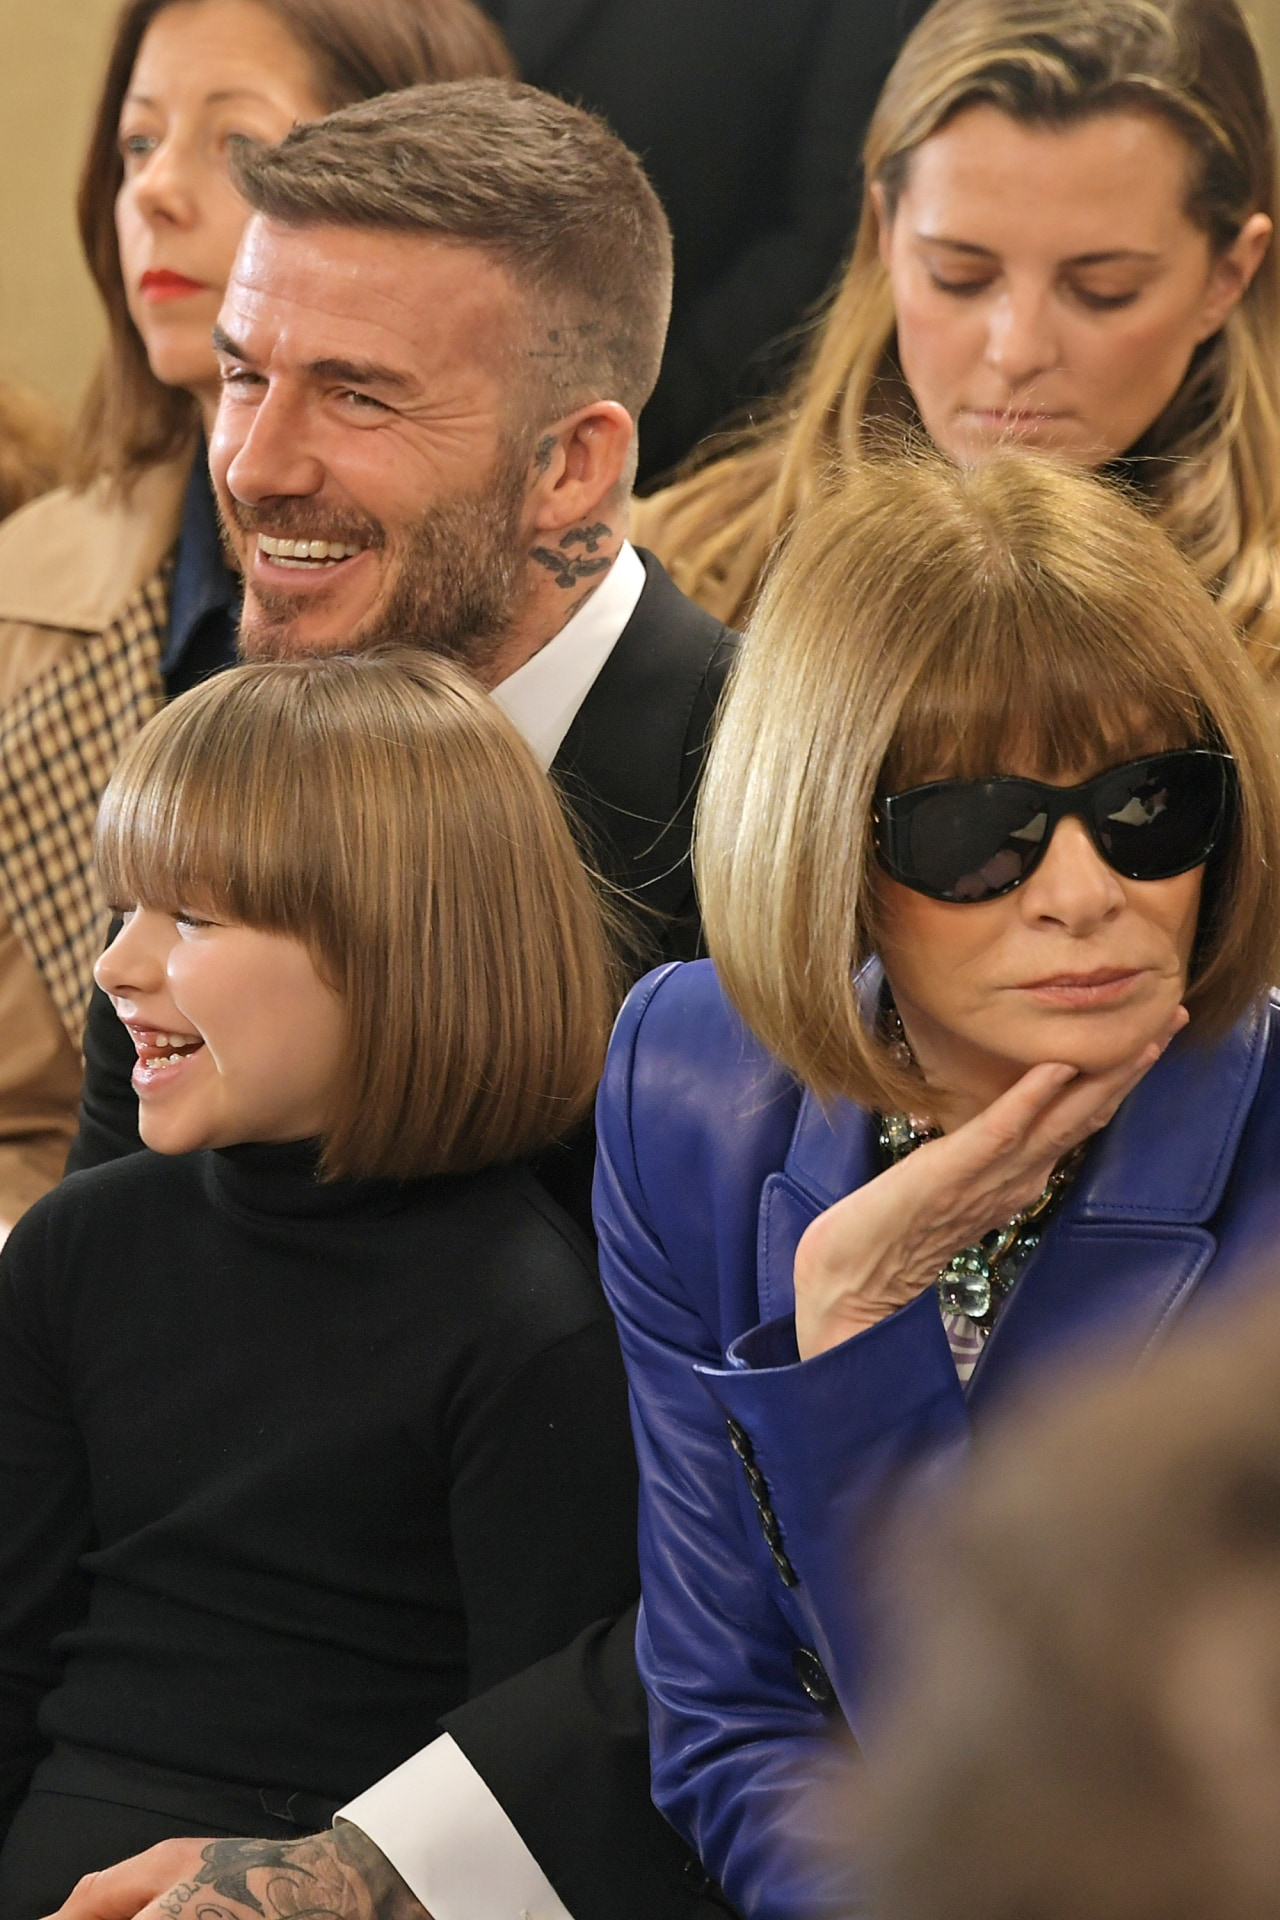 Harper Beckham, David Beckham and Dame Anna Wintour attend the Victoria Beckham show during London Fashion Week February 2019 at Tate Britain on February 17, 2019 in London, England. Image credit: David M. Benett/Dave Benett/Getty Images